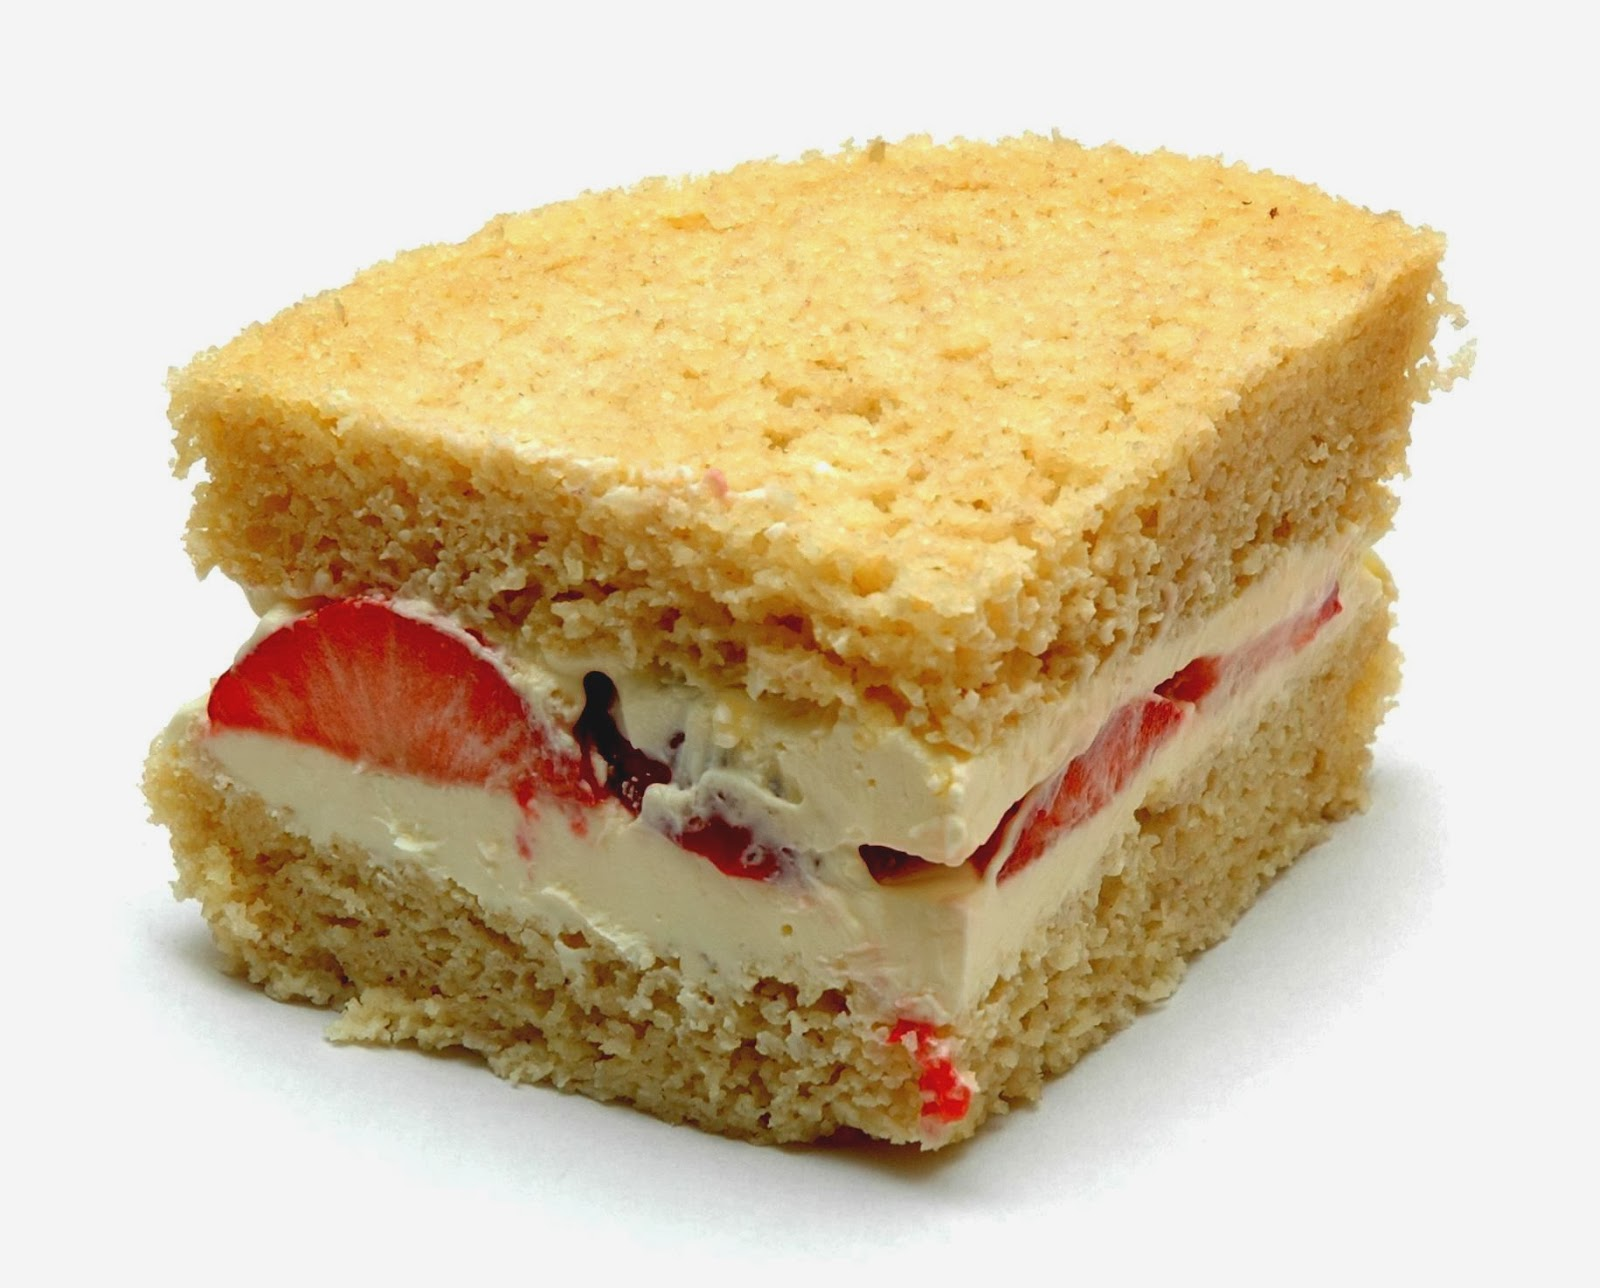 Diabetic Sponge Cake Recipes Uk: The Low Carb Diabetic: Featured Food Of The Day Low Carb